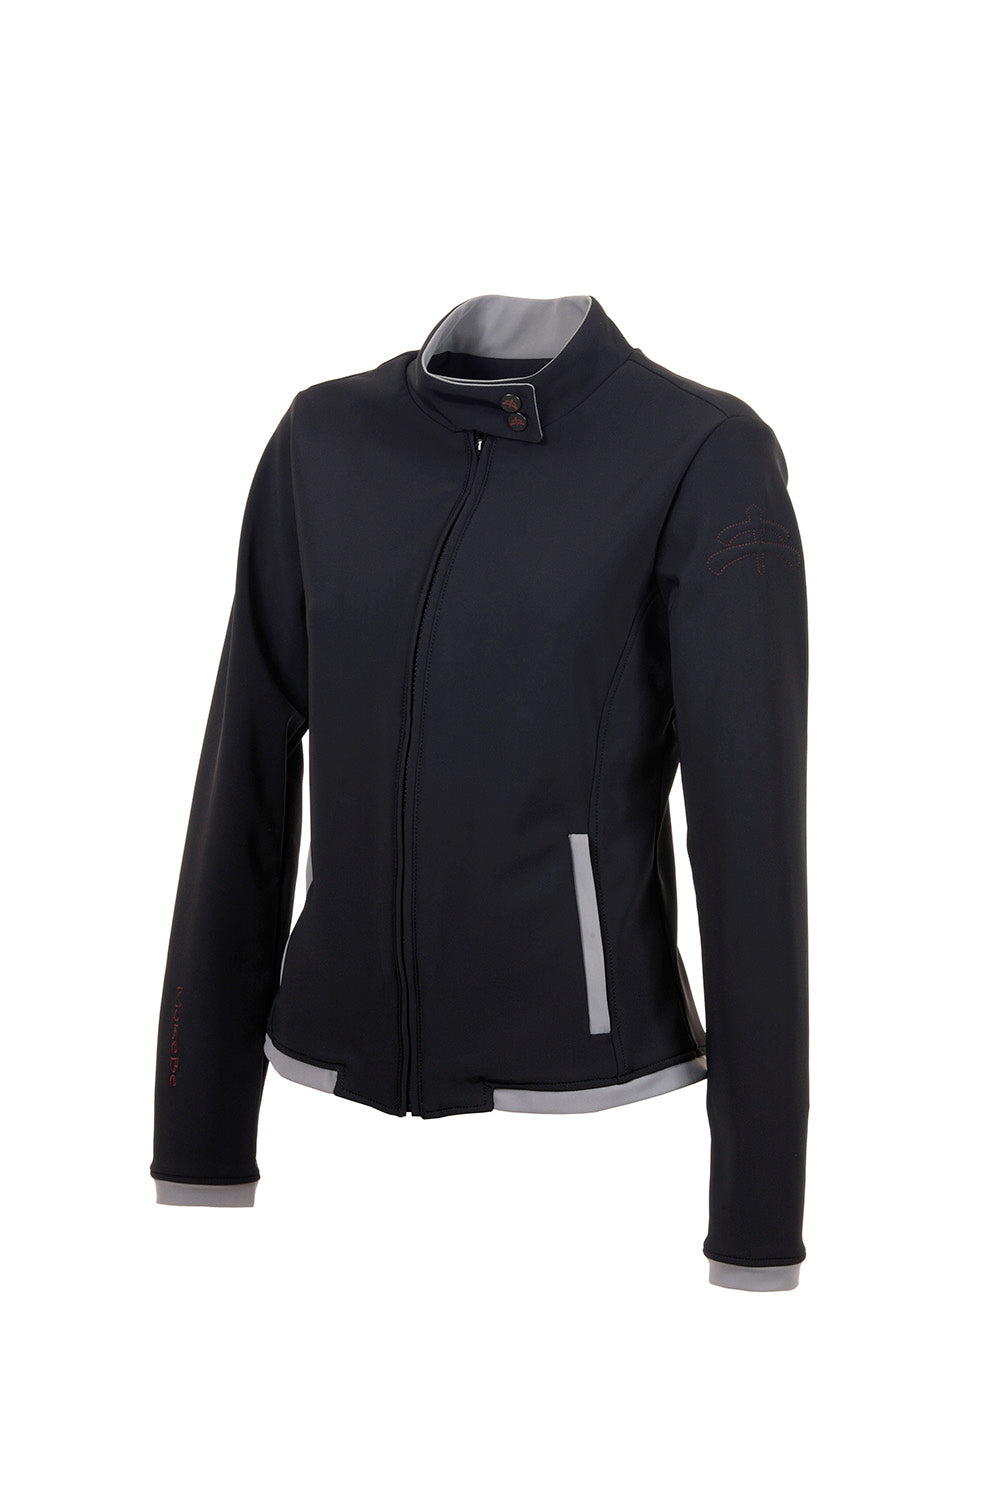 black jacket EMMA | ladies bomber | middle season bomber | Technical Sweater | lady sweater | riding sweater | leisure time | sweater | clothing | equestrian | Makebe | elegance | comfort | comfort of movement | Made in Italy | riding | lady jacket | jacket |